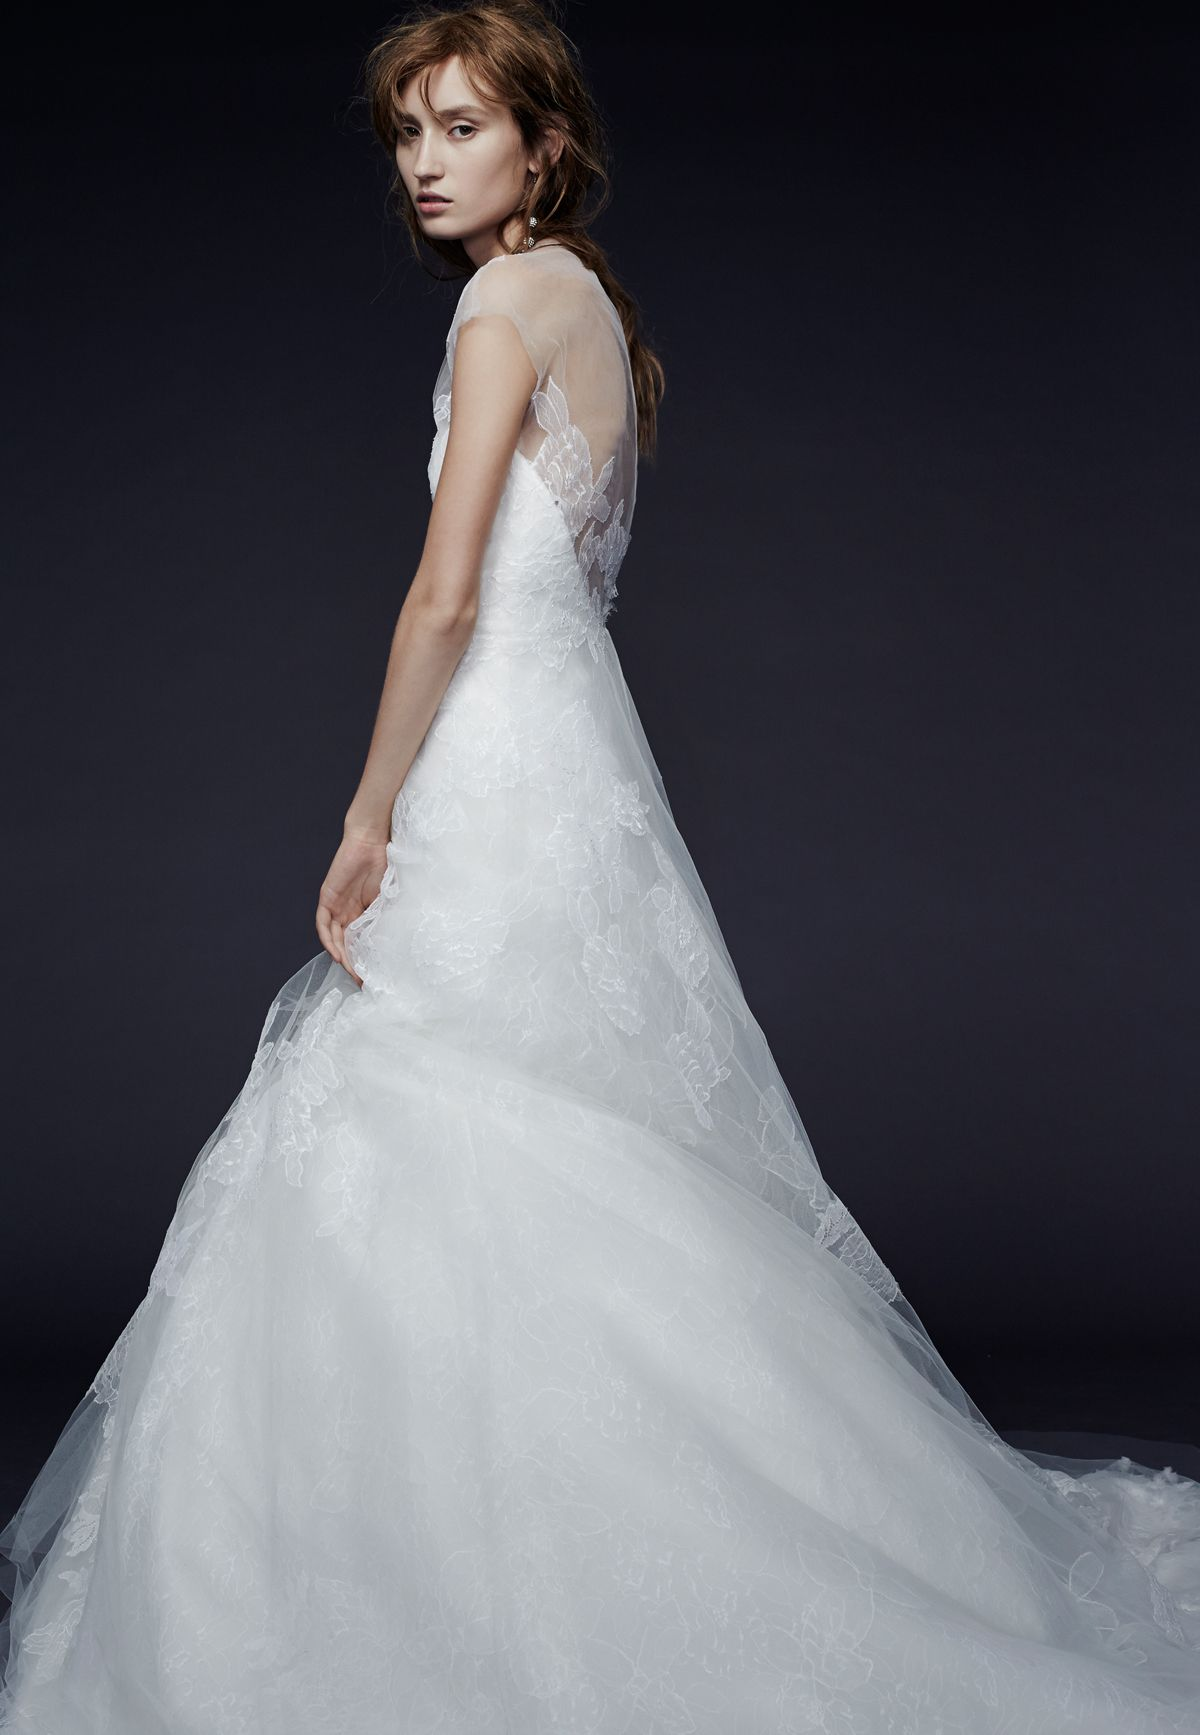 Cowl back lace wedding dress  Presenting the Vera Wang Iconic Bridal Collection Browse print